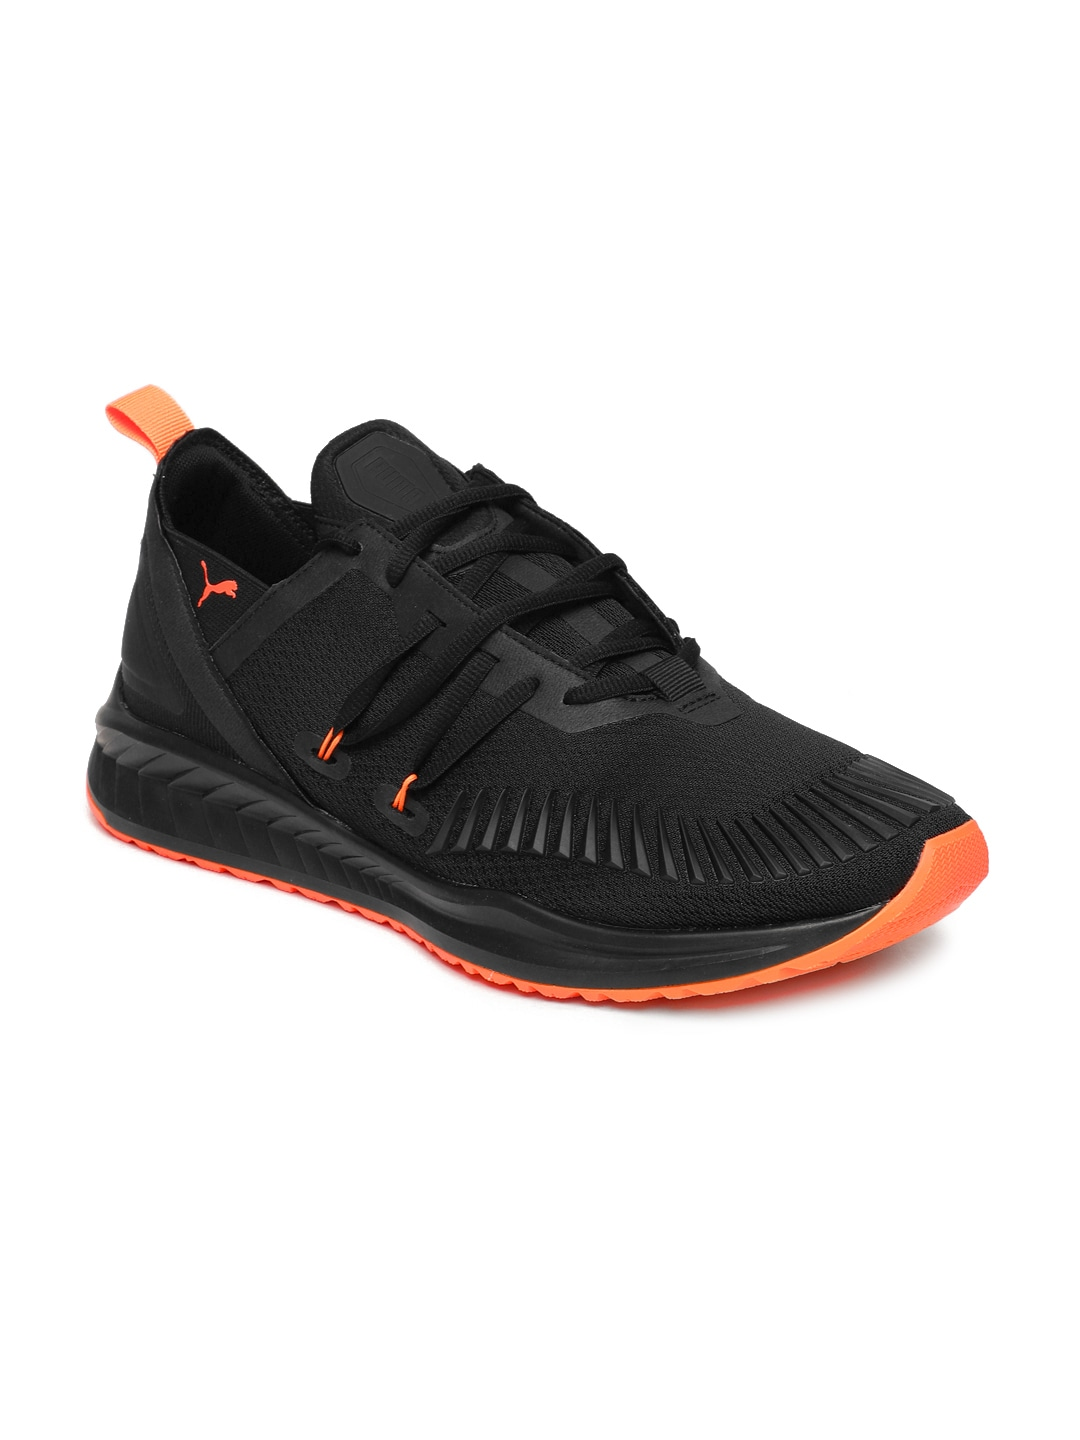 d5e324a28a0 Puma Black Running Shoes - Buy Puma Black Running Shoes online in India